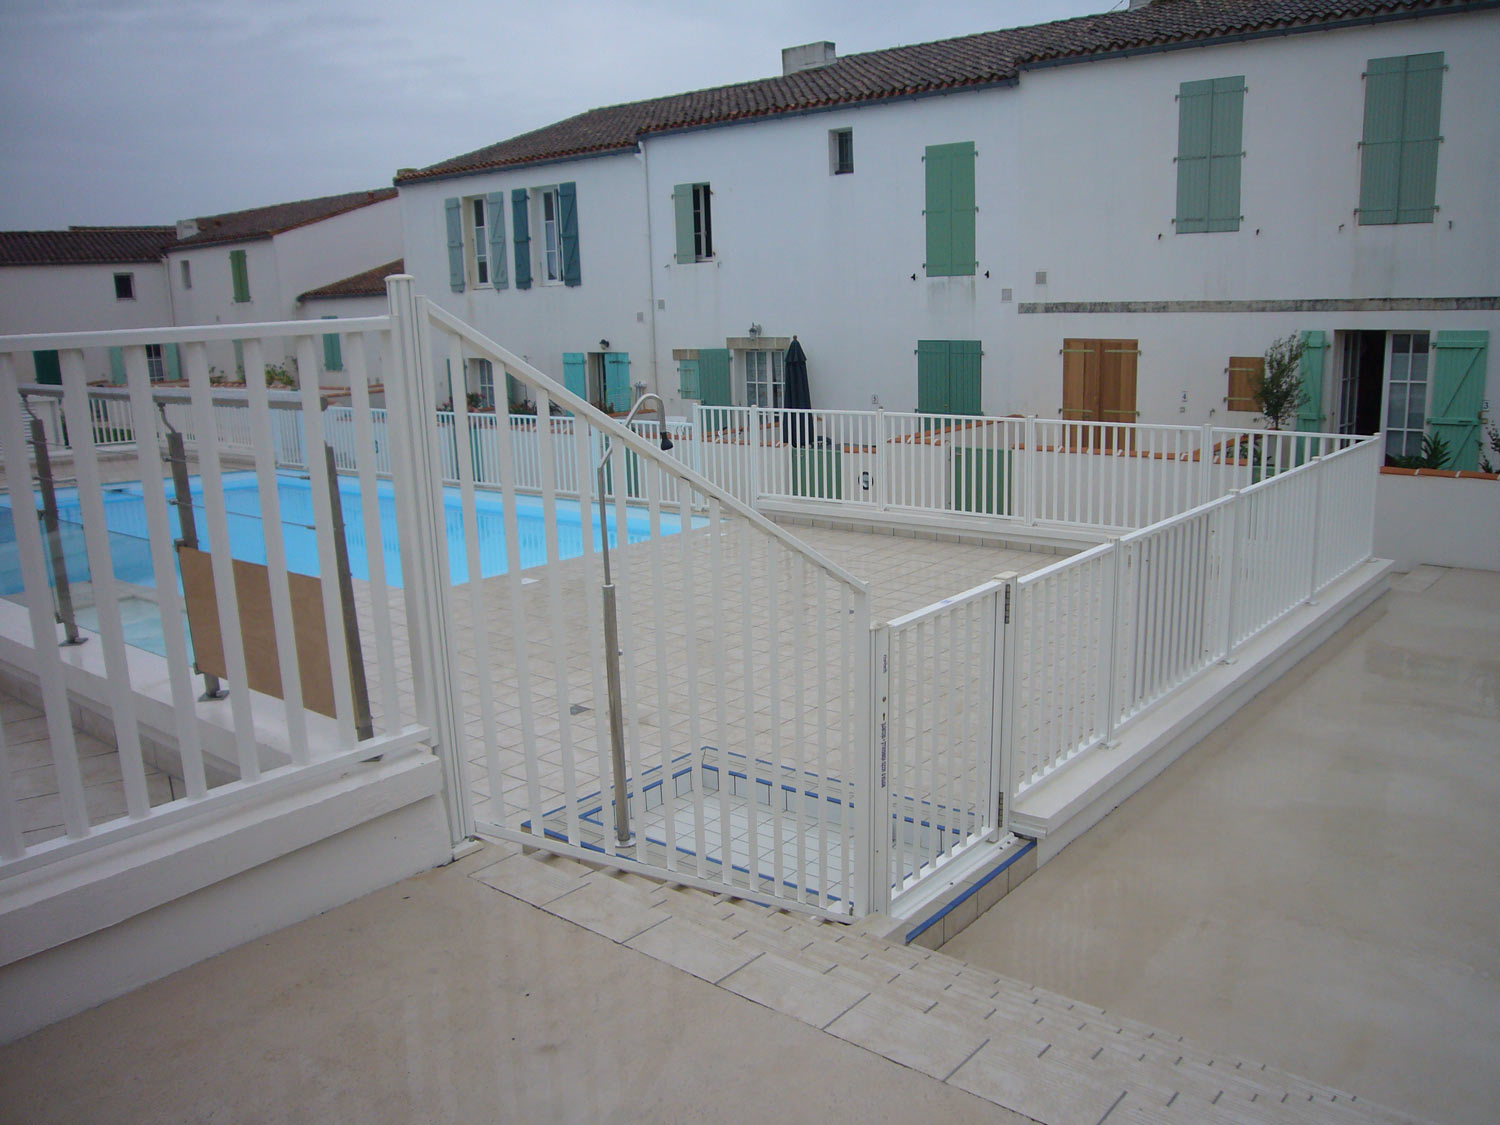 Barriere de protection piscine photo 117 barrieres de for Barriere amovible pour piscine